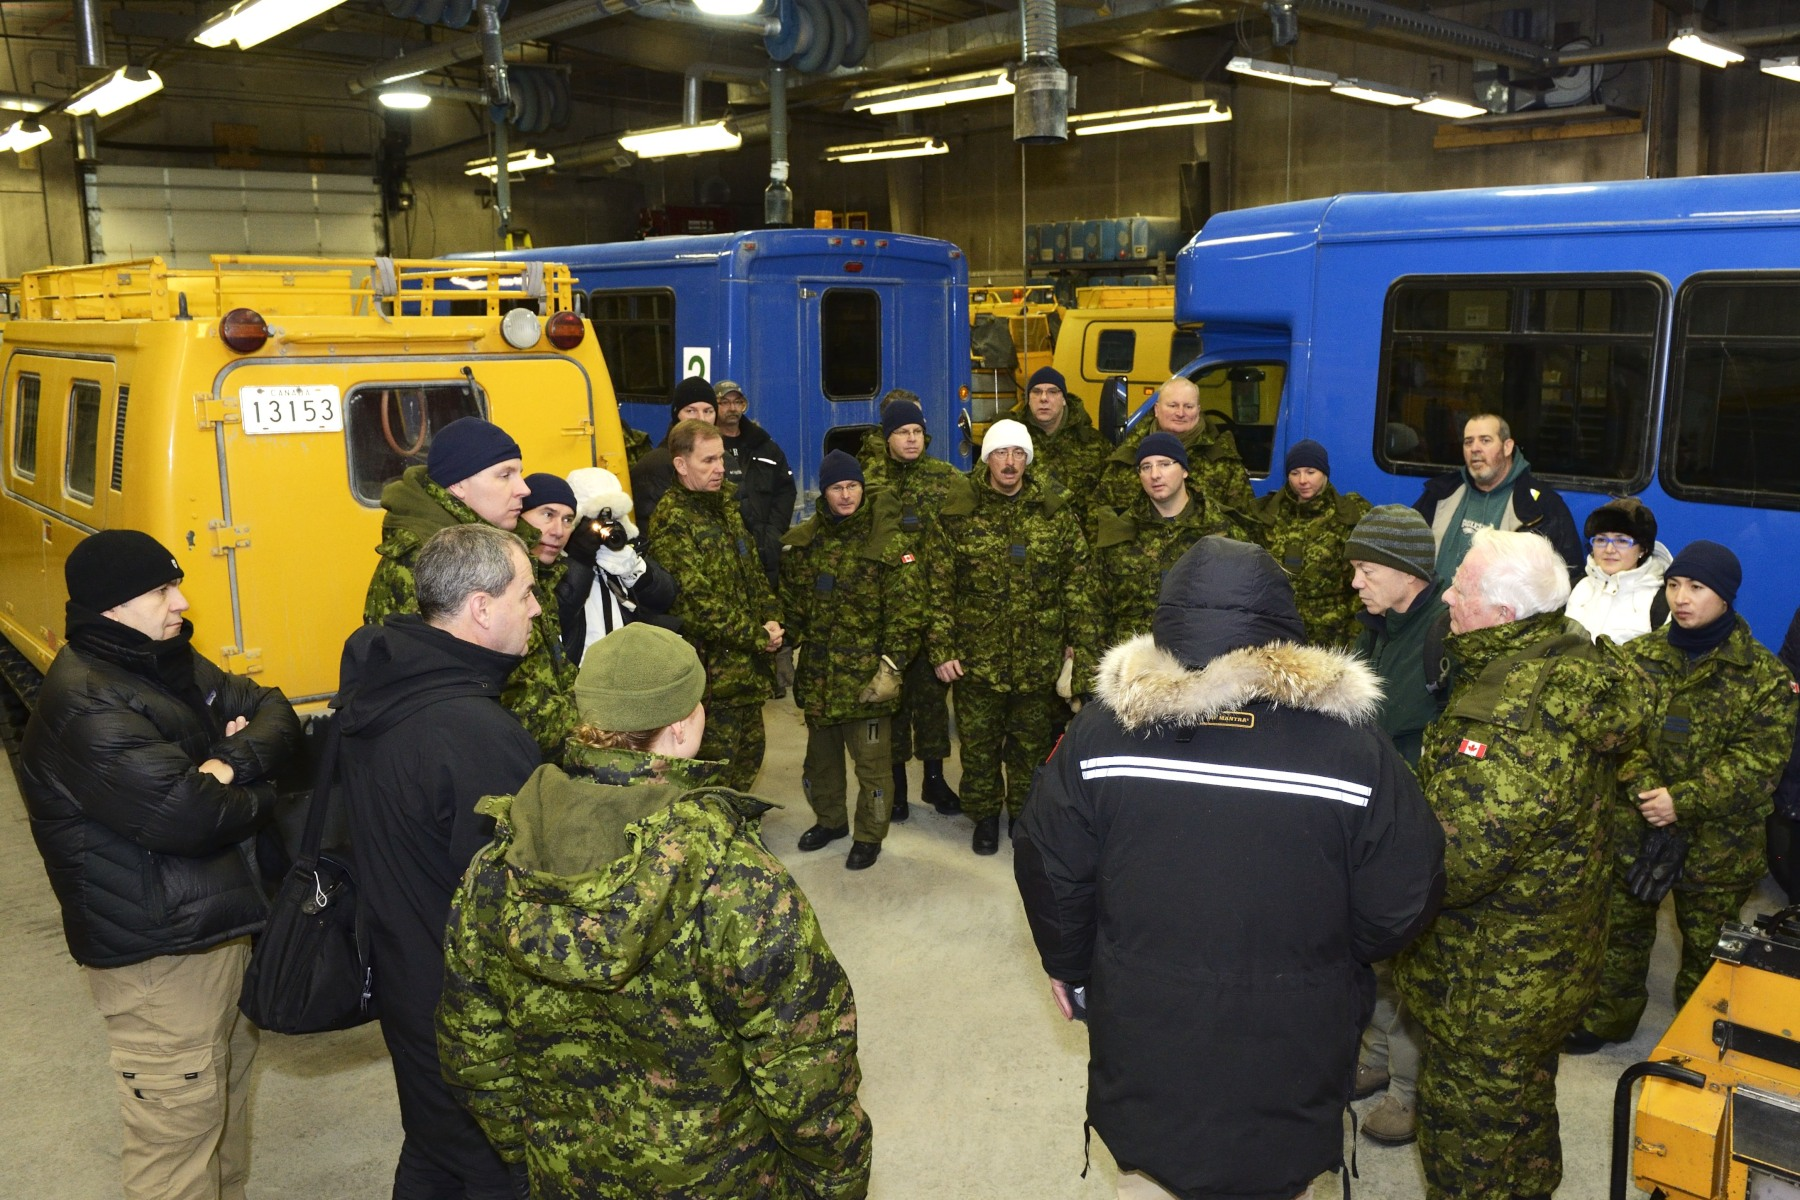 His Excellency conducted a walking tour of the station to learn more about its use of scientific innovation, and its link with Canada and the North.